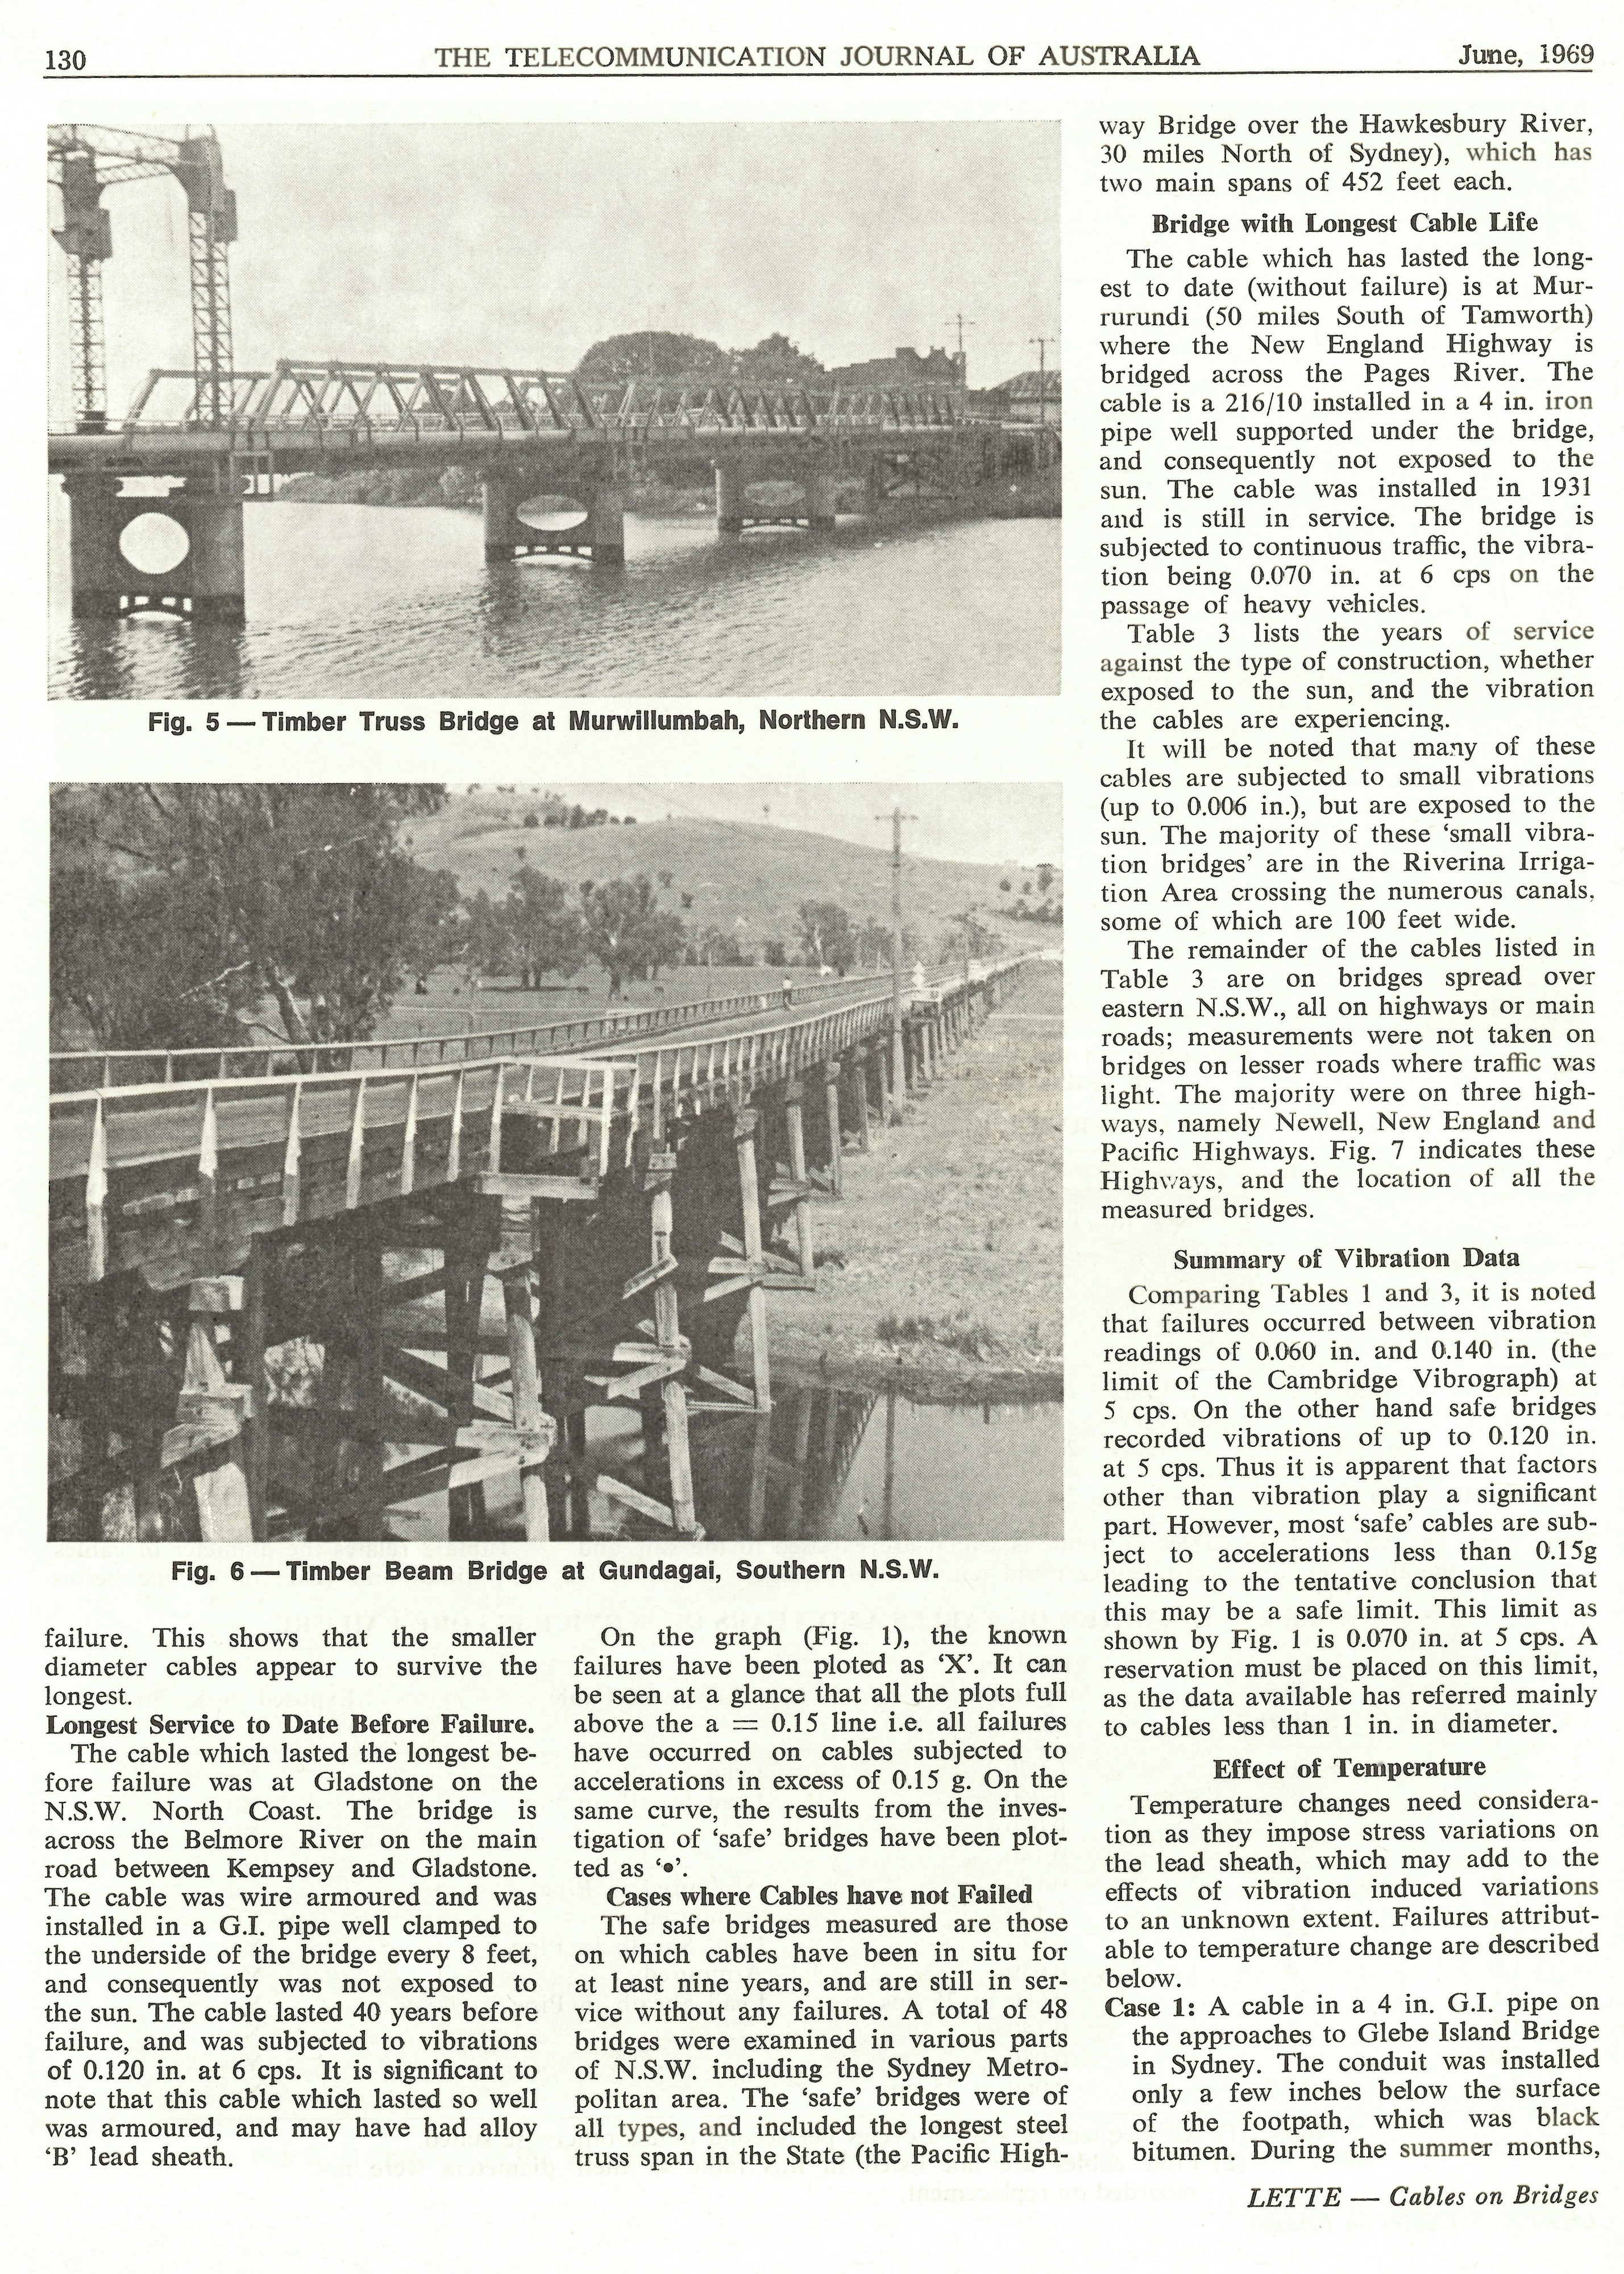 Lead Sheathed Cables on Bridges, Page 130